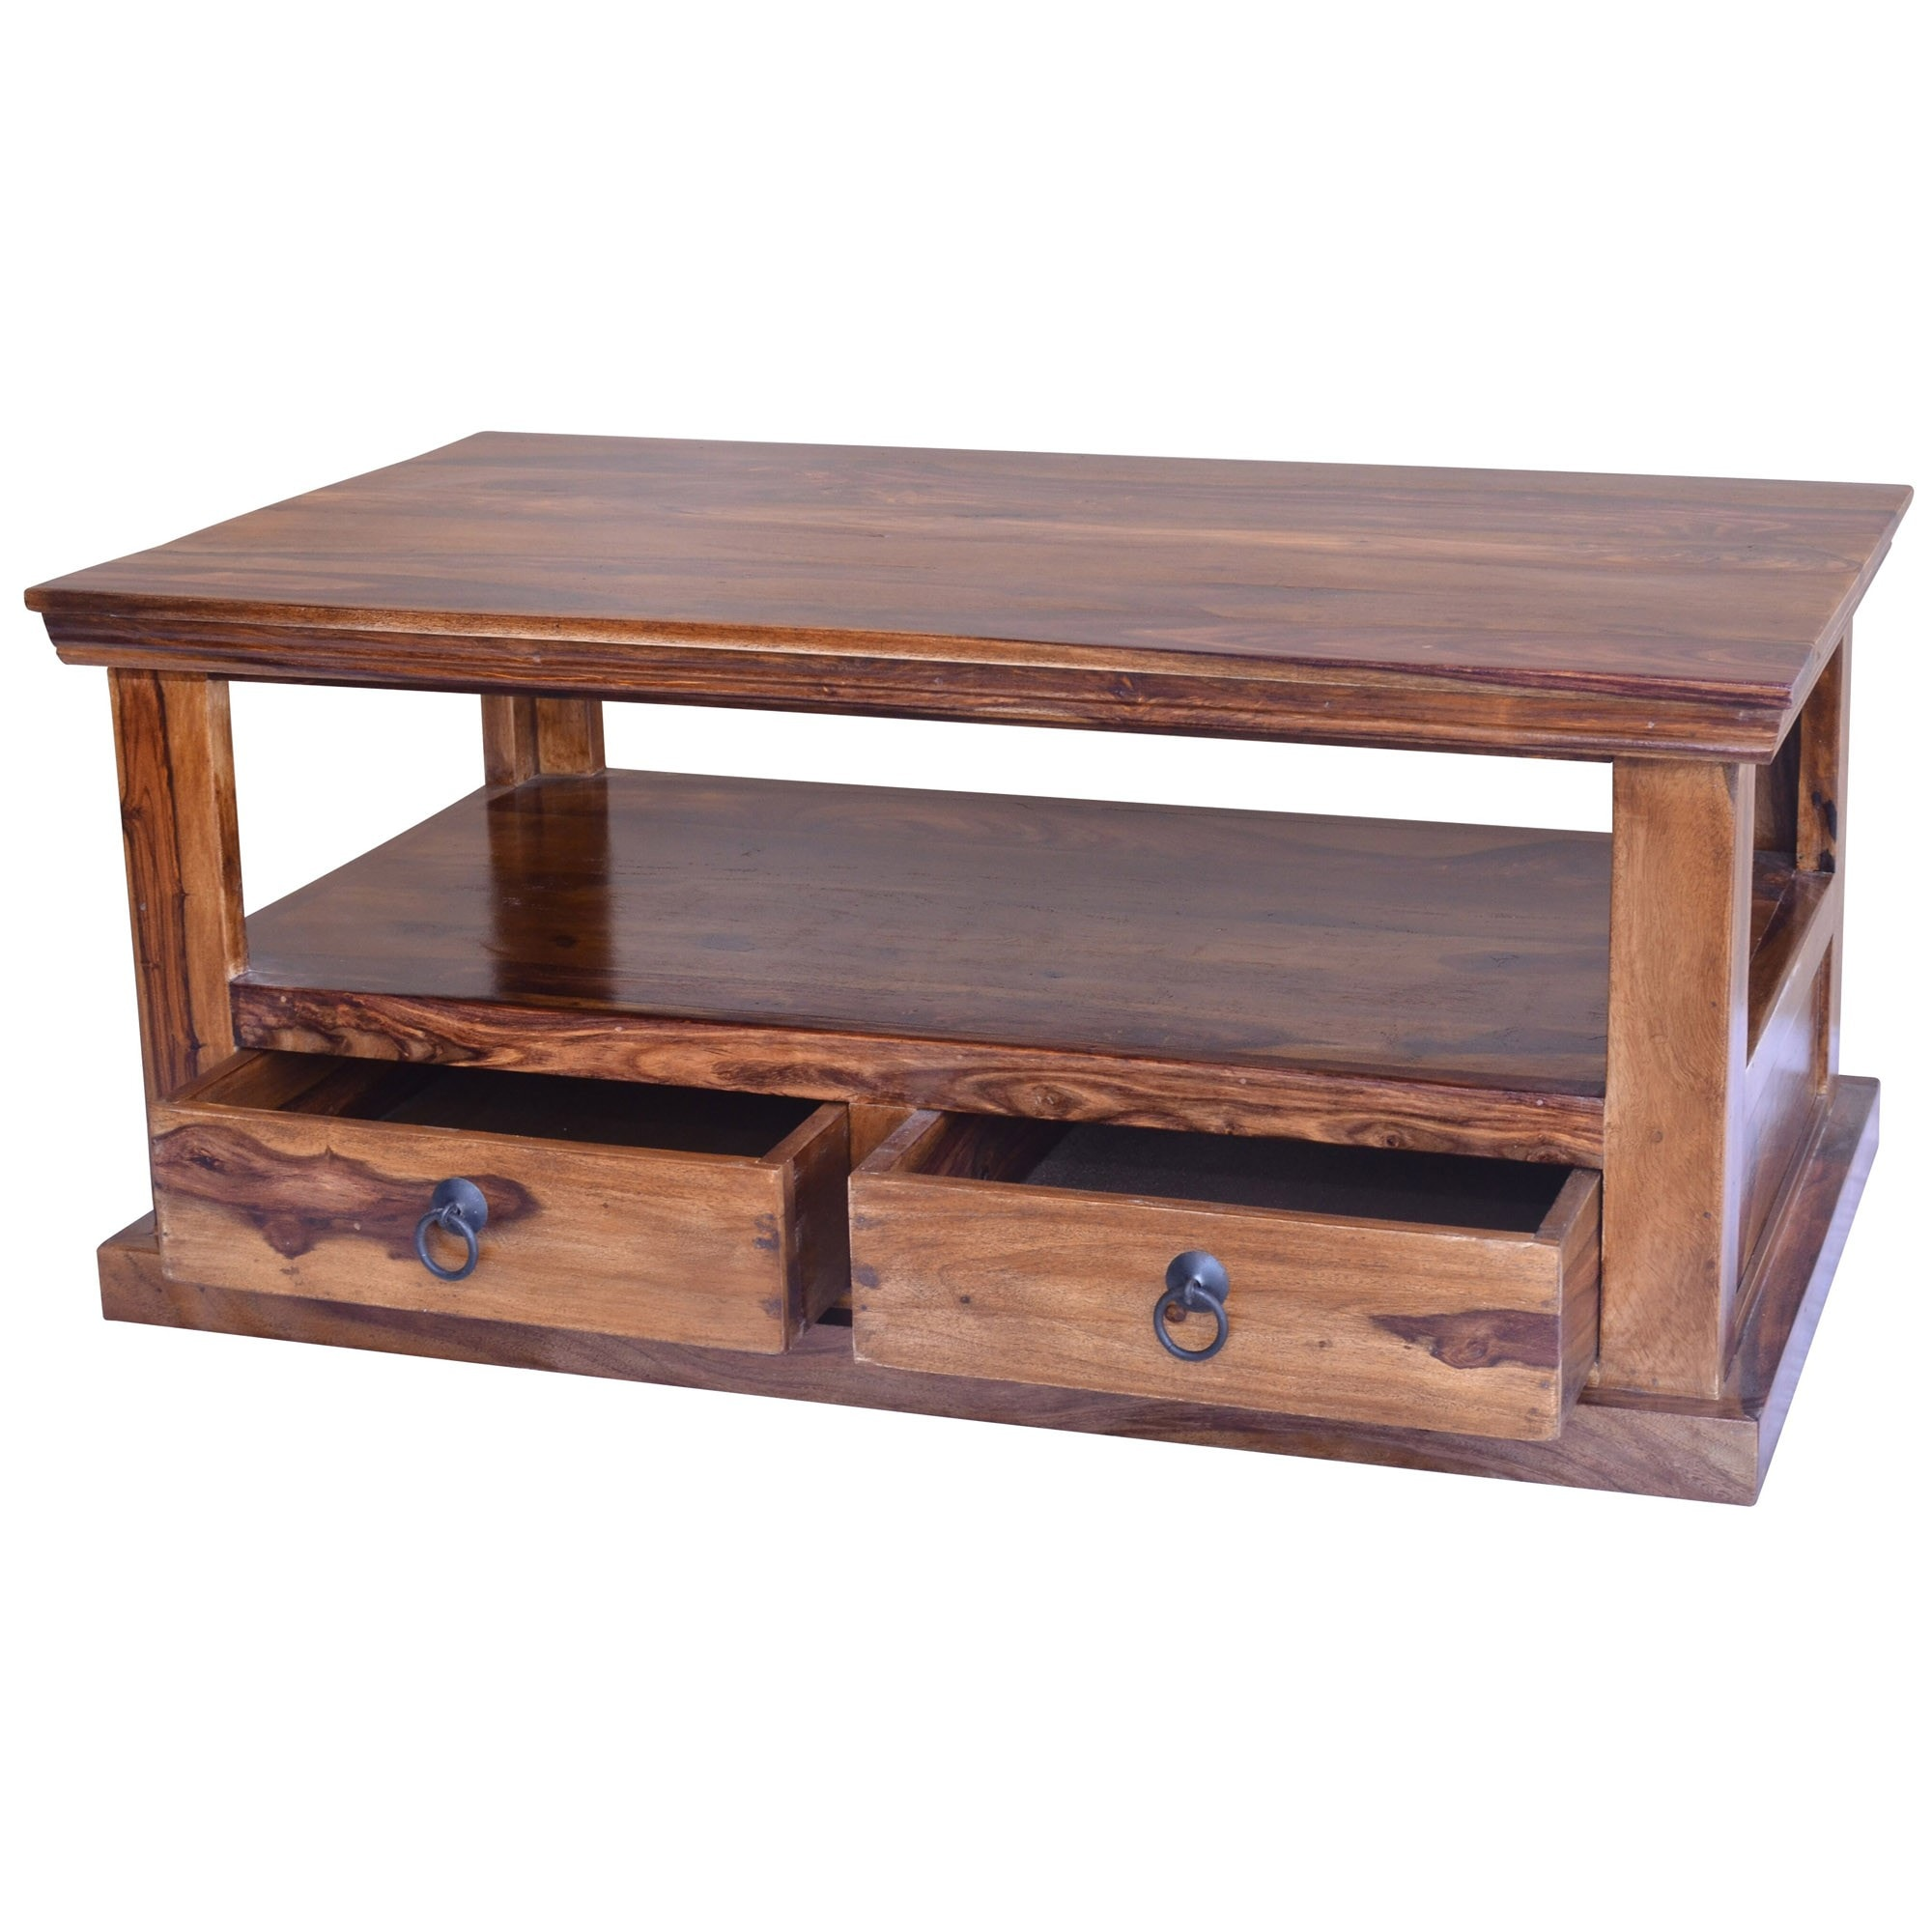 Ganga Coffee Table With Shelf Wooden Coffee Tables Coffee Tables